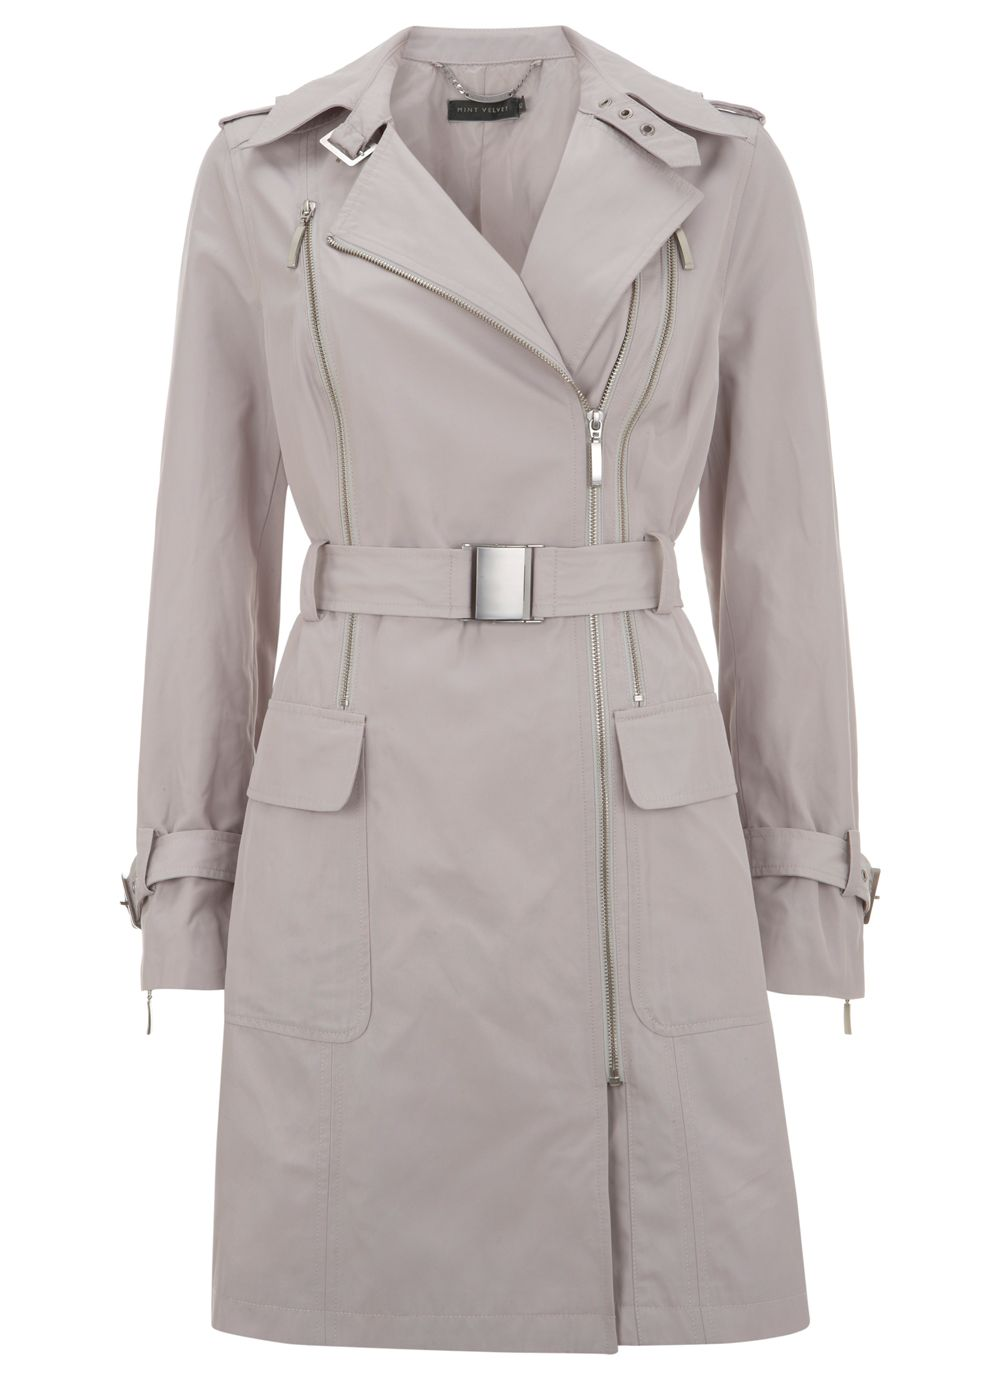 Stone double zip trench coat